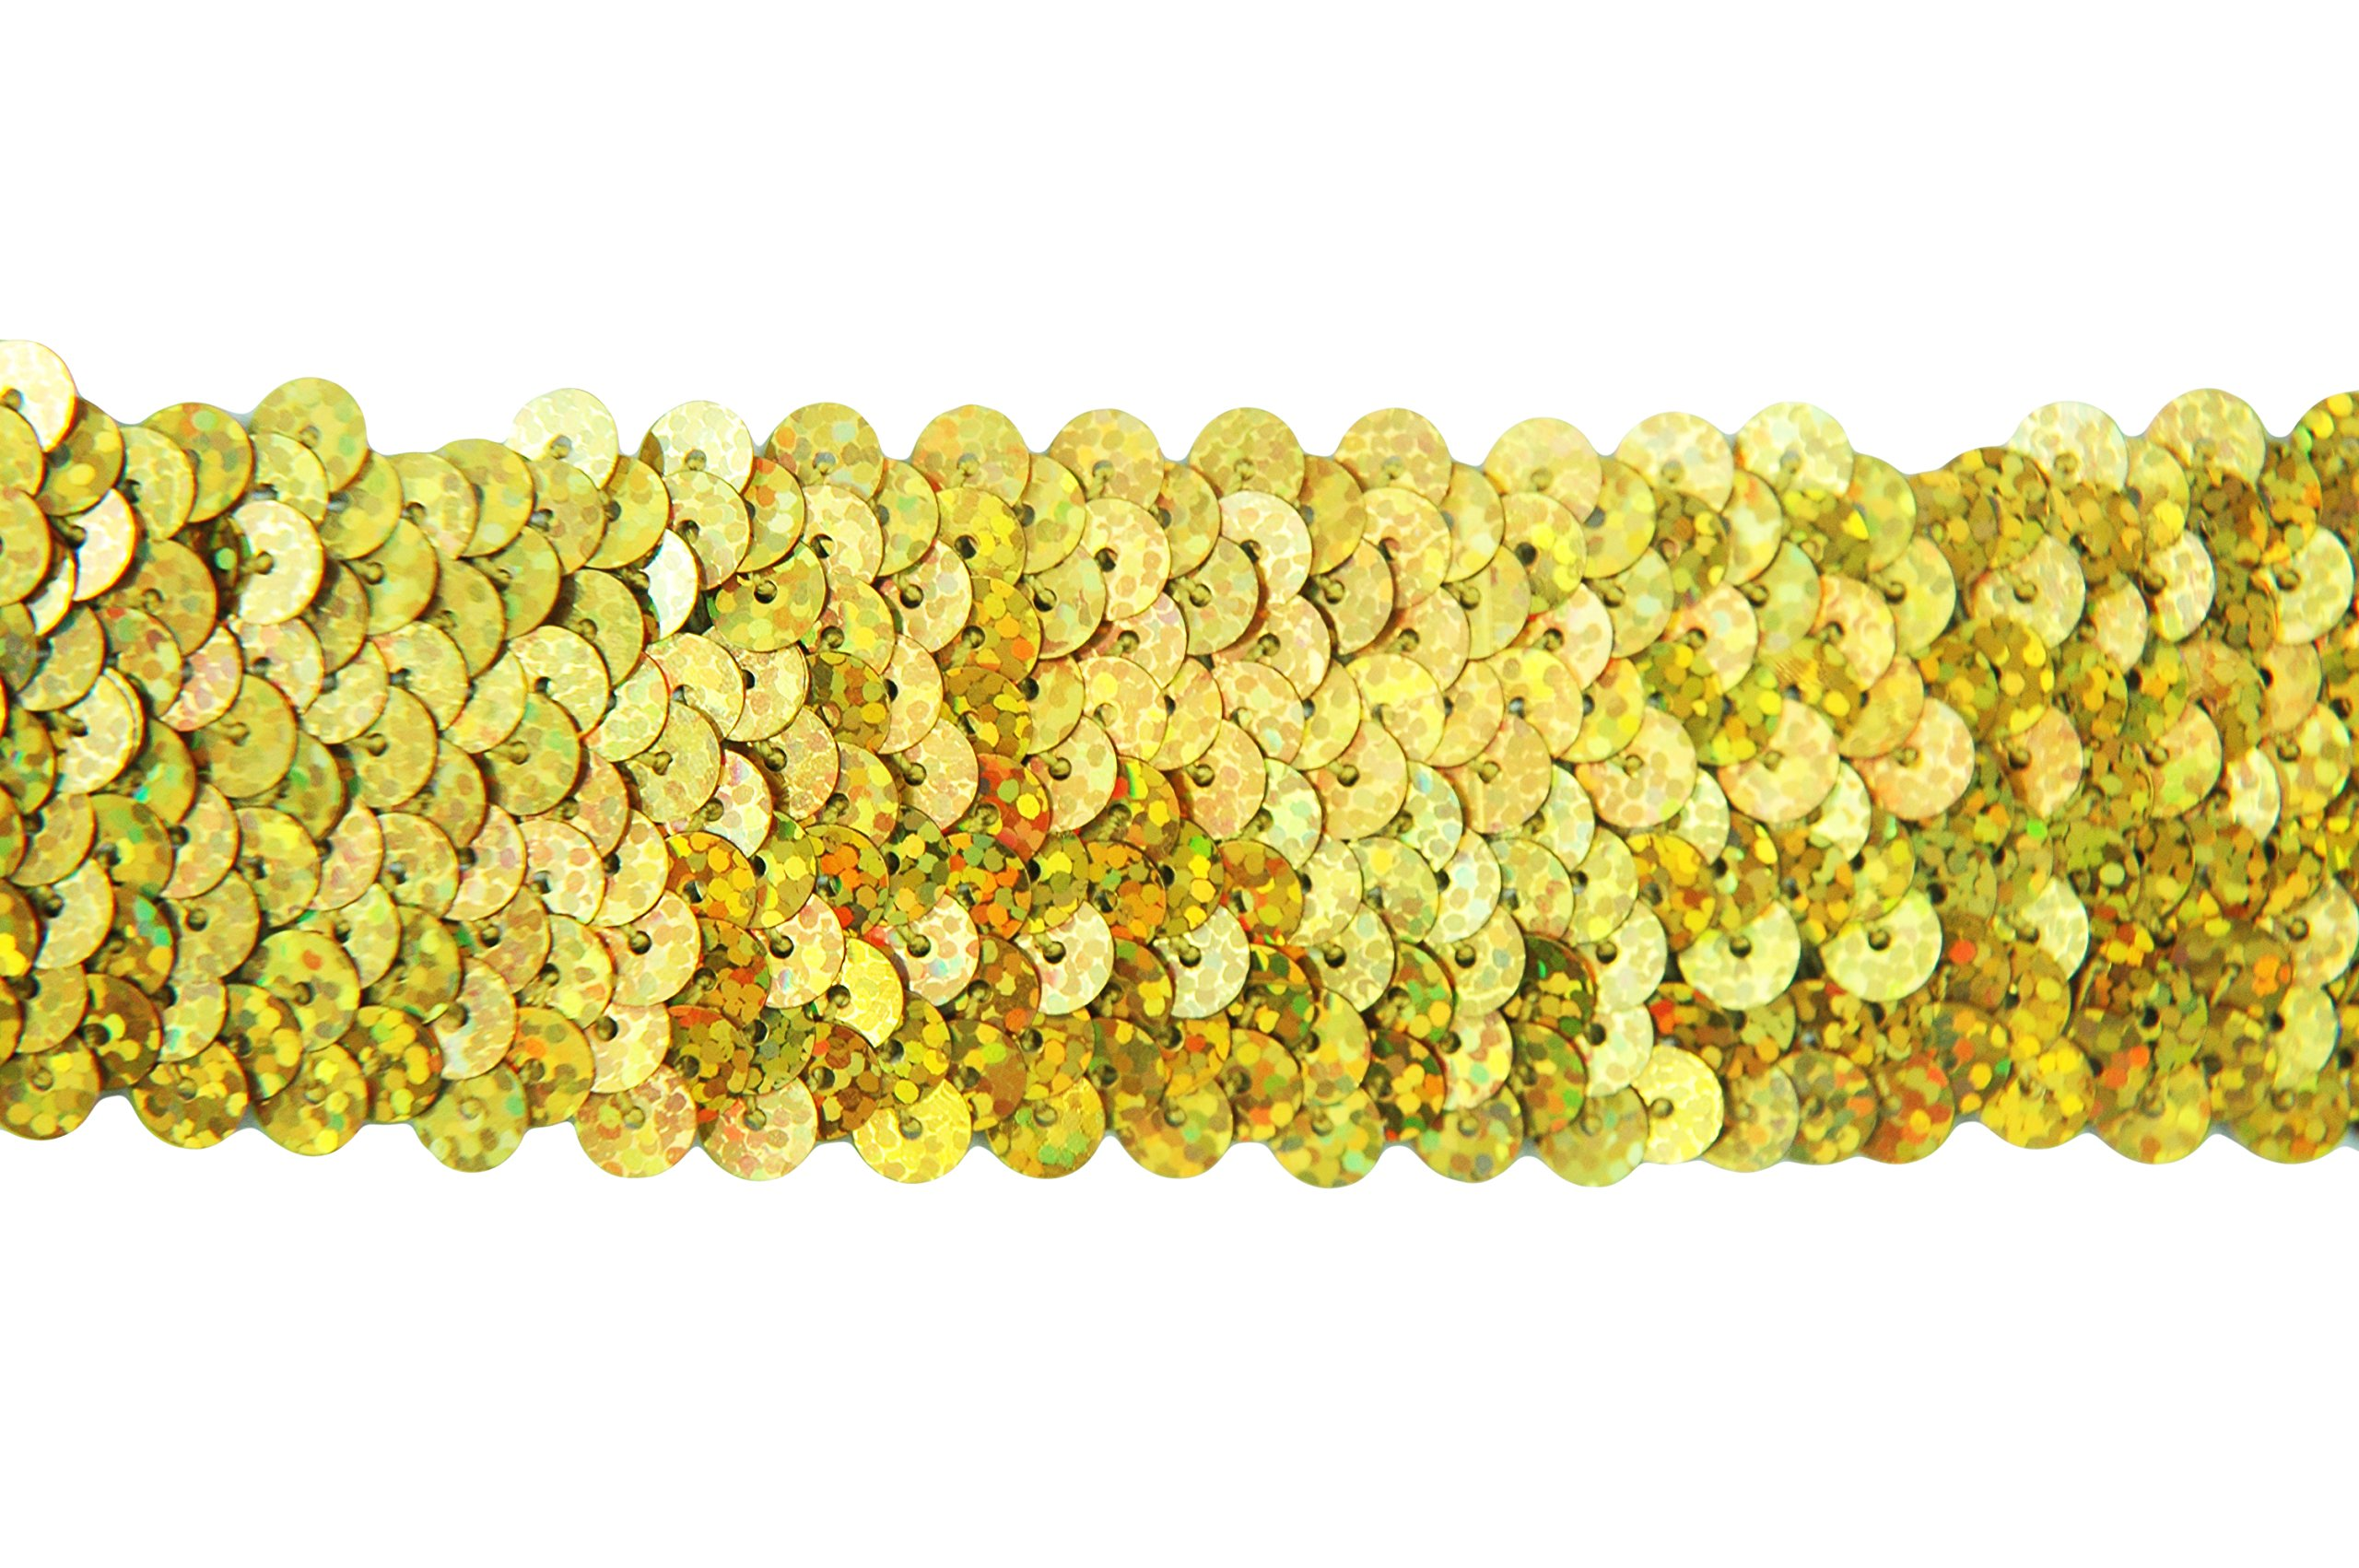 Stretch Sequin Trim Roll - 1.5'' Wide 11yd Length - Gold - Available in 18 Colors - 2 Widths - Threadart by Threadart